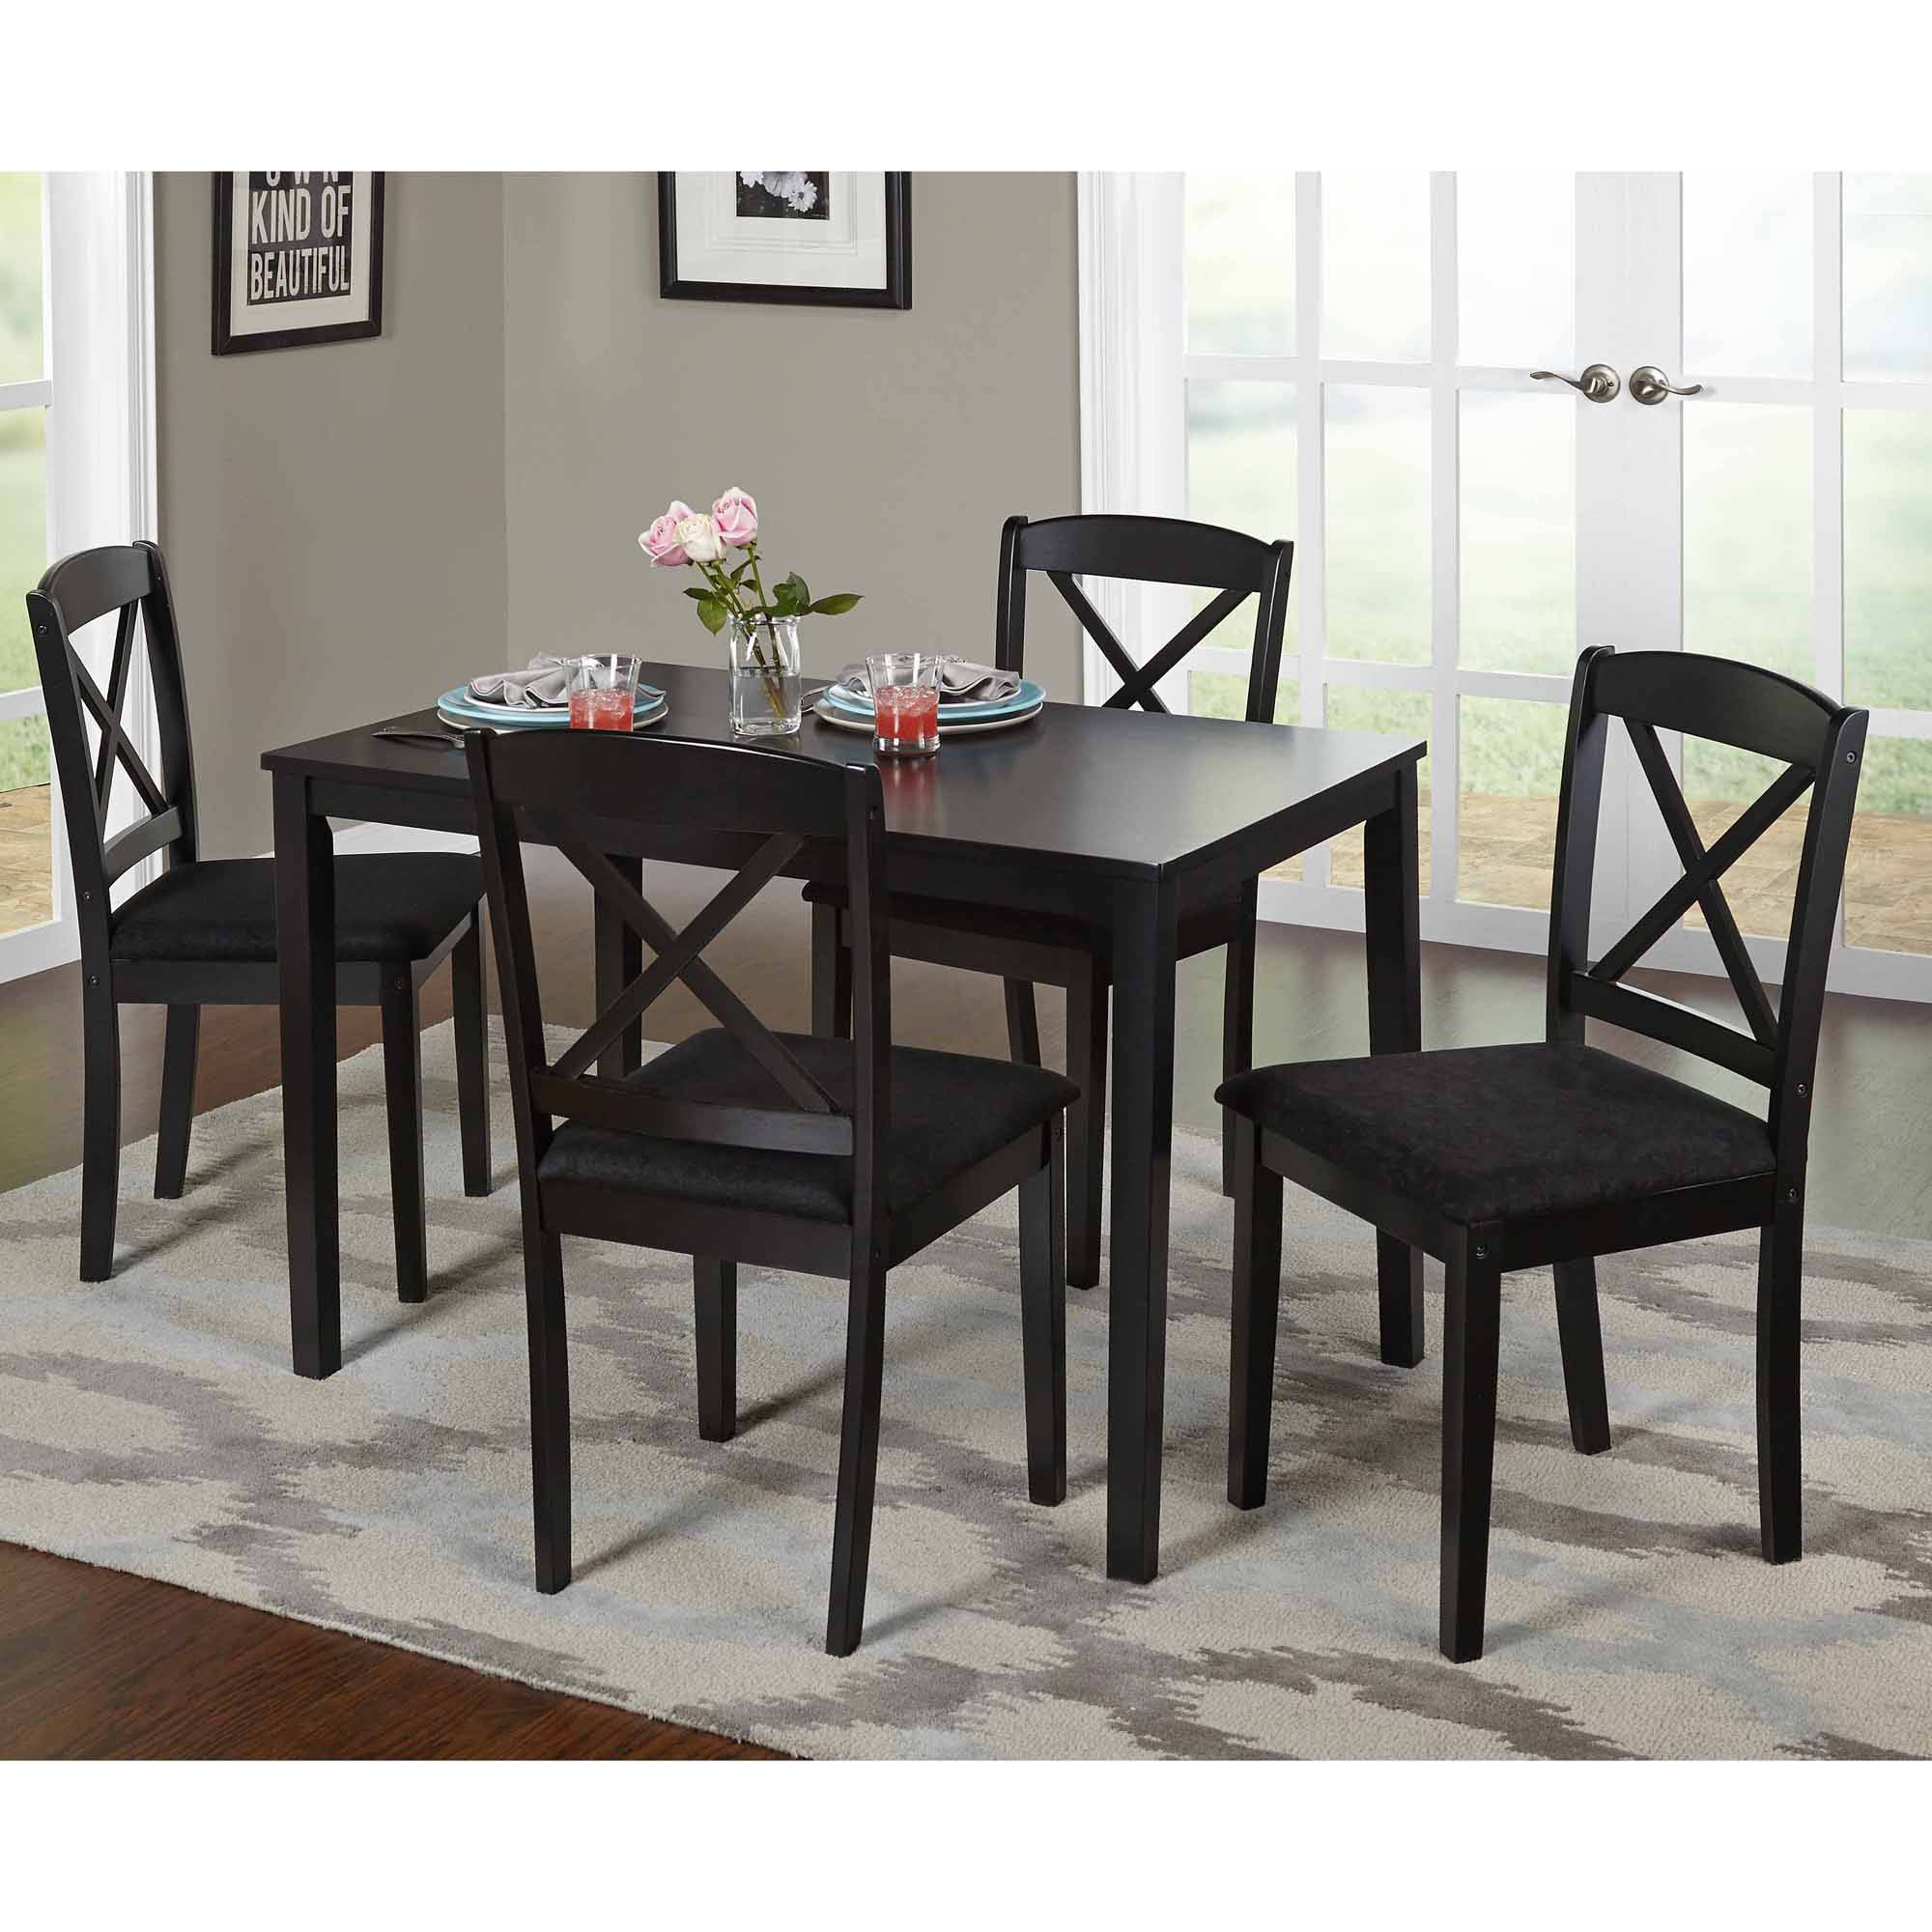 Kitchen Furniture Sets Costway Pub Dining Set Counter Height 3 Piece Table And Chairs Set